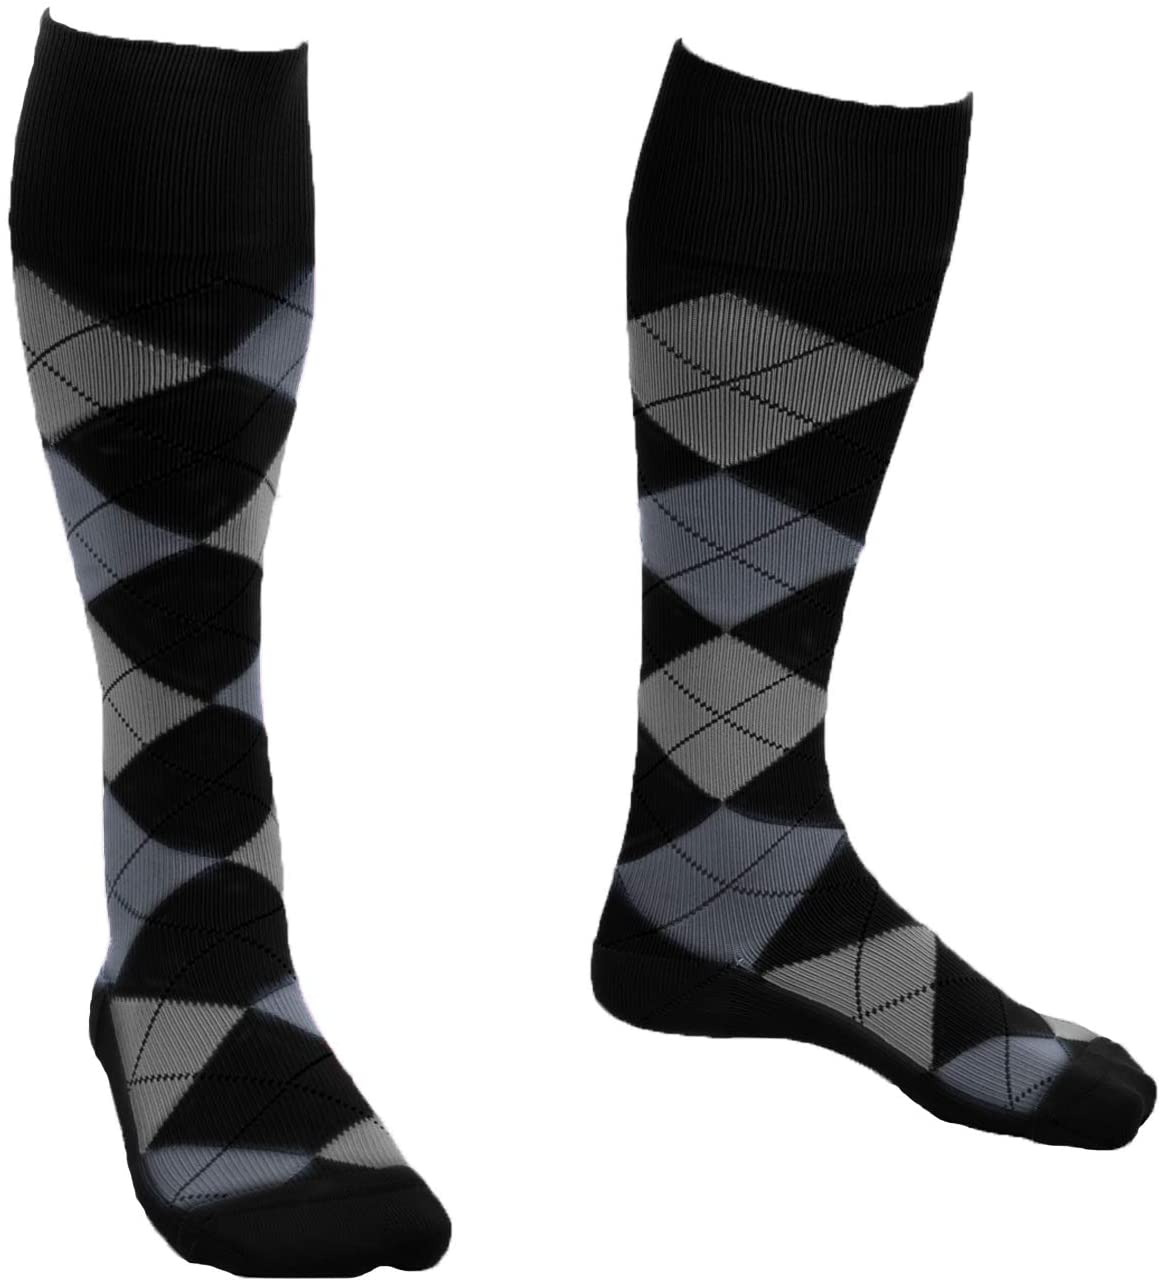 EvoNation USA Made Men & Women Argyle Graduated Compression Socks 15-20 mmHg Medical Quality Knee High Orthopedic Moderate Pressure Travel Support Stockings Hose - Best Fit Comfort (XL, Black)